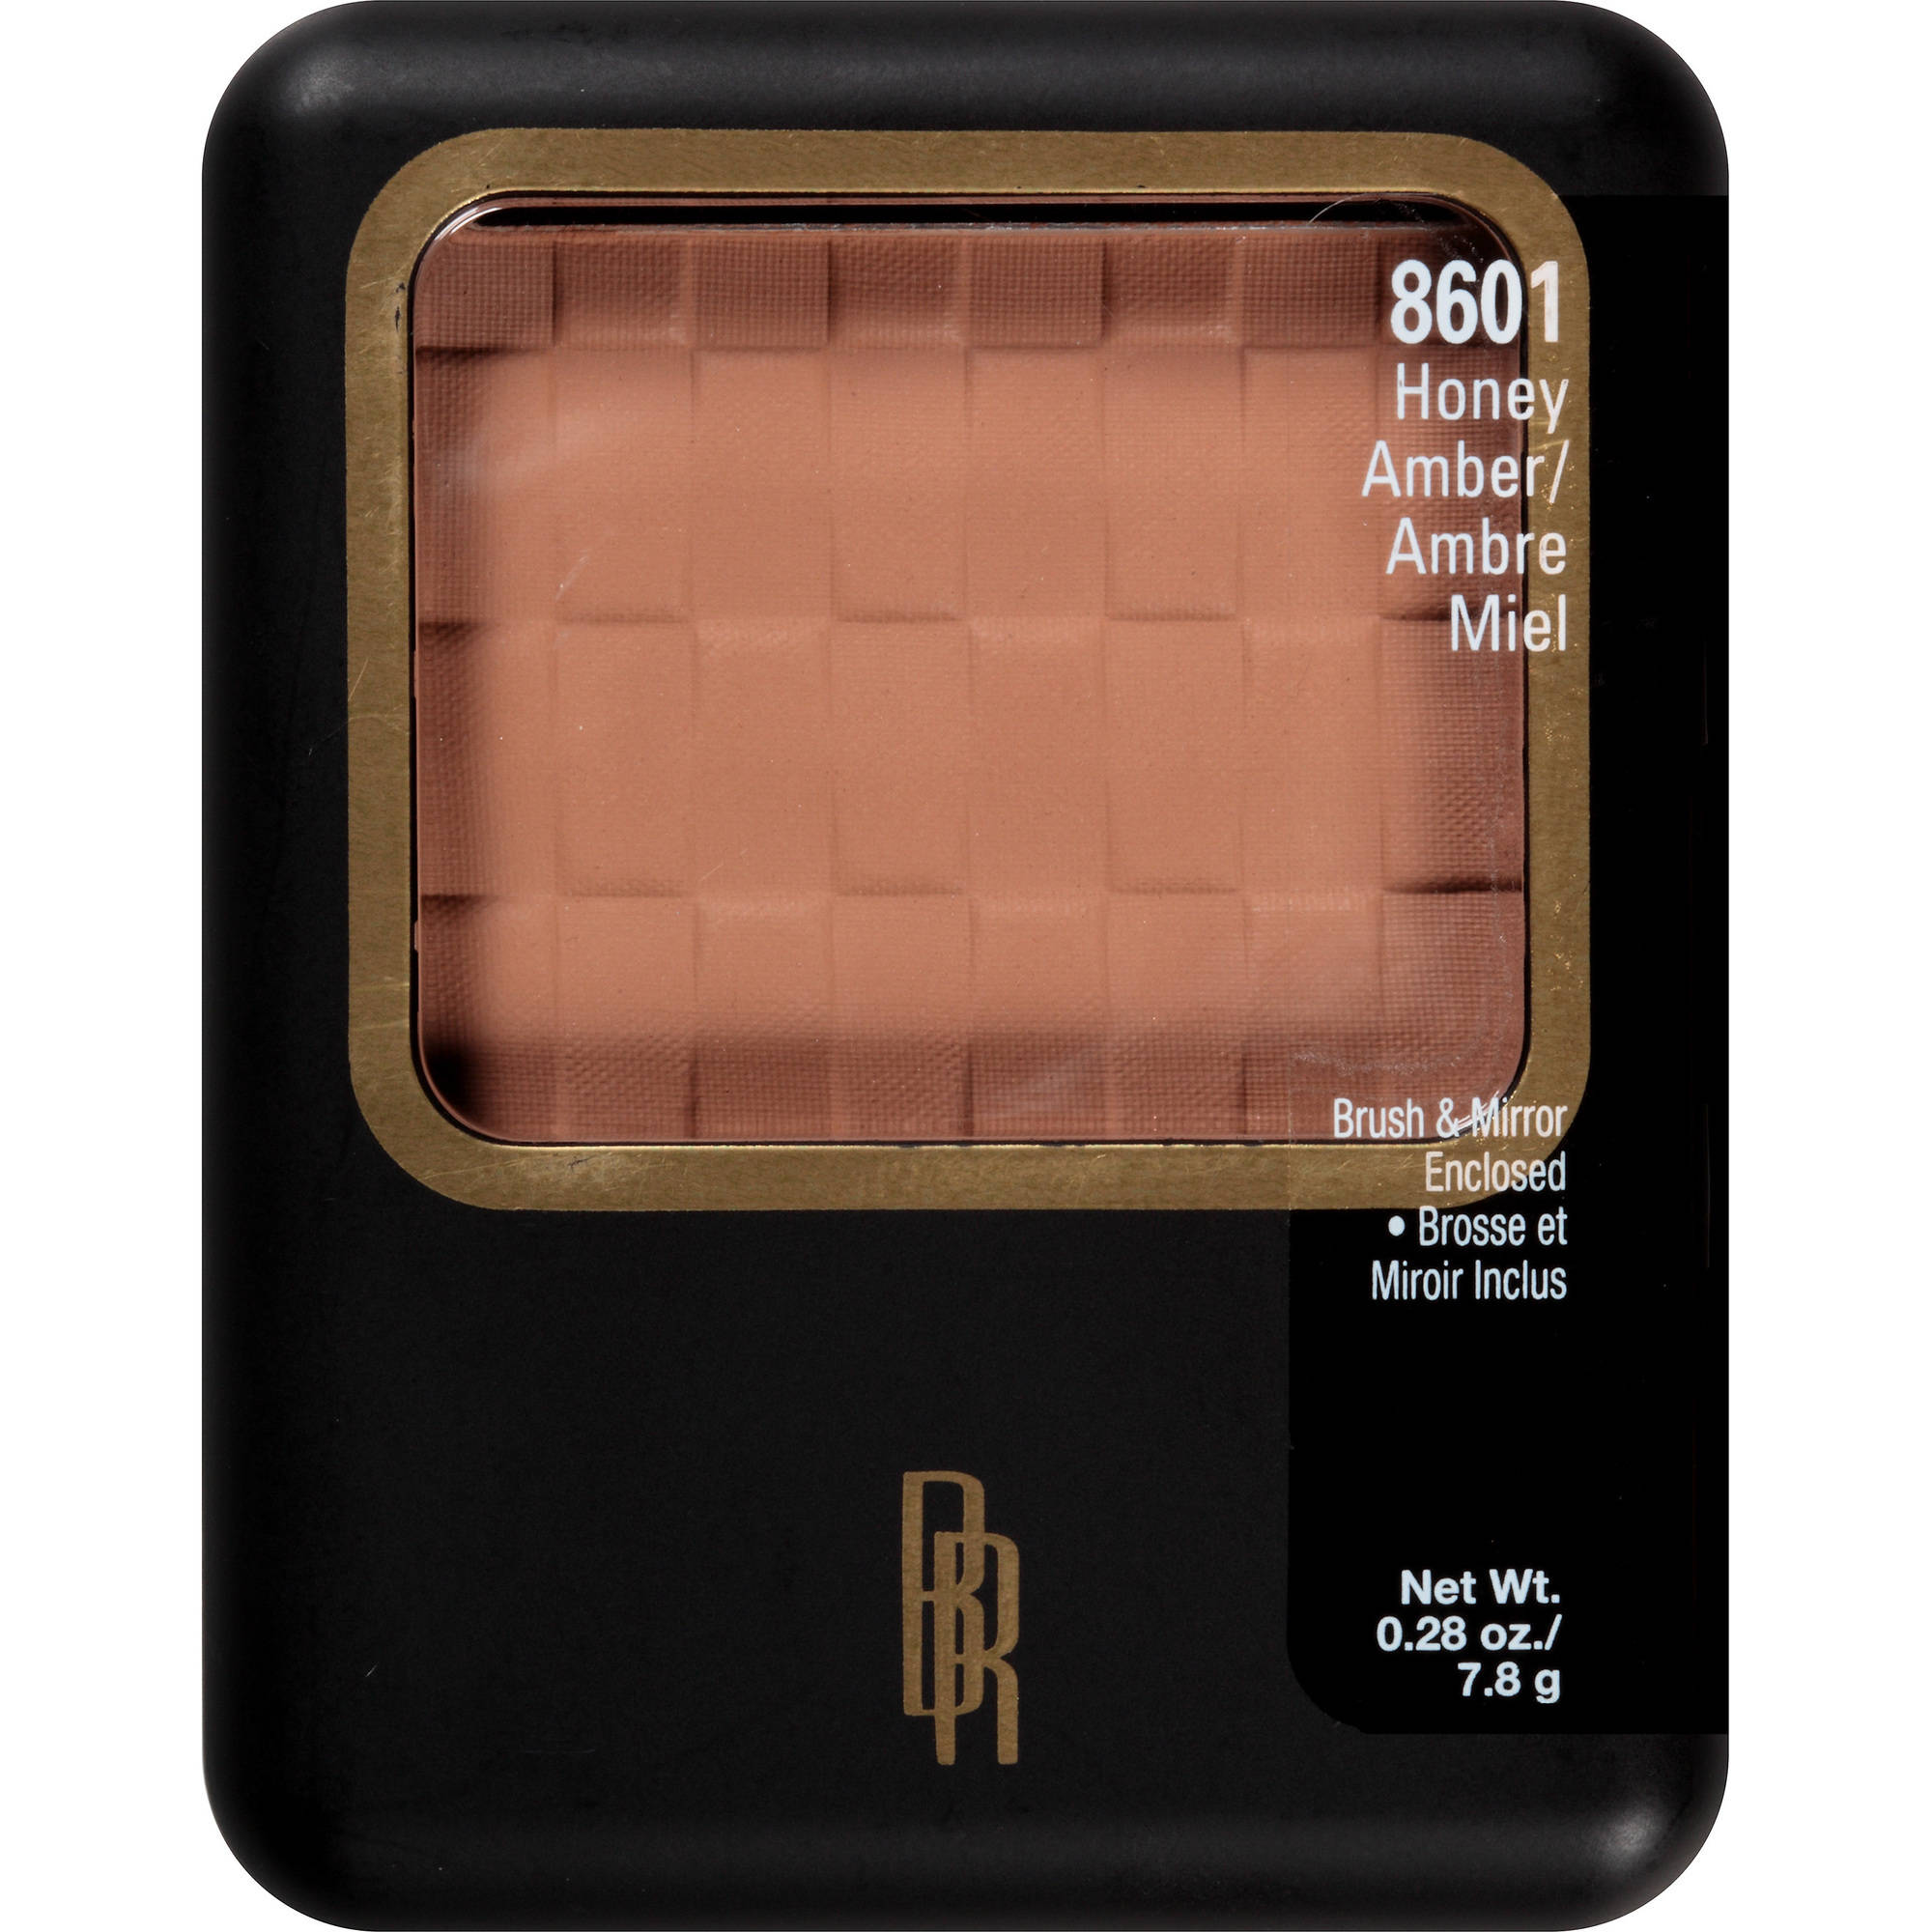 Black Radiance Pressed Facial Powder, 8601 Honey Amber, 0.28 oz